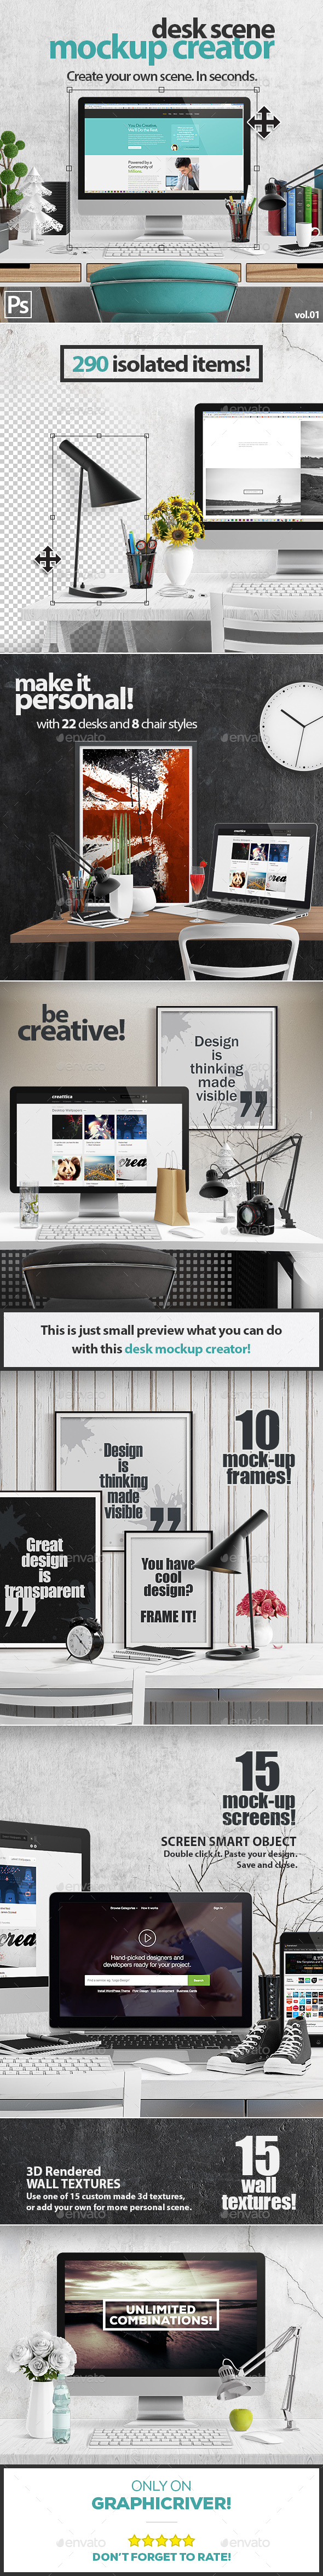 Desk Scene Mock-Up Creator - Hero Images Graphics